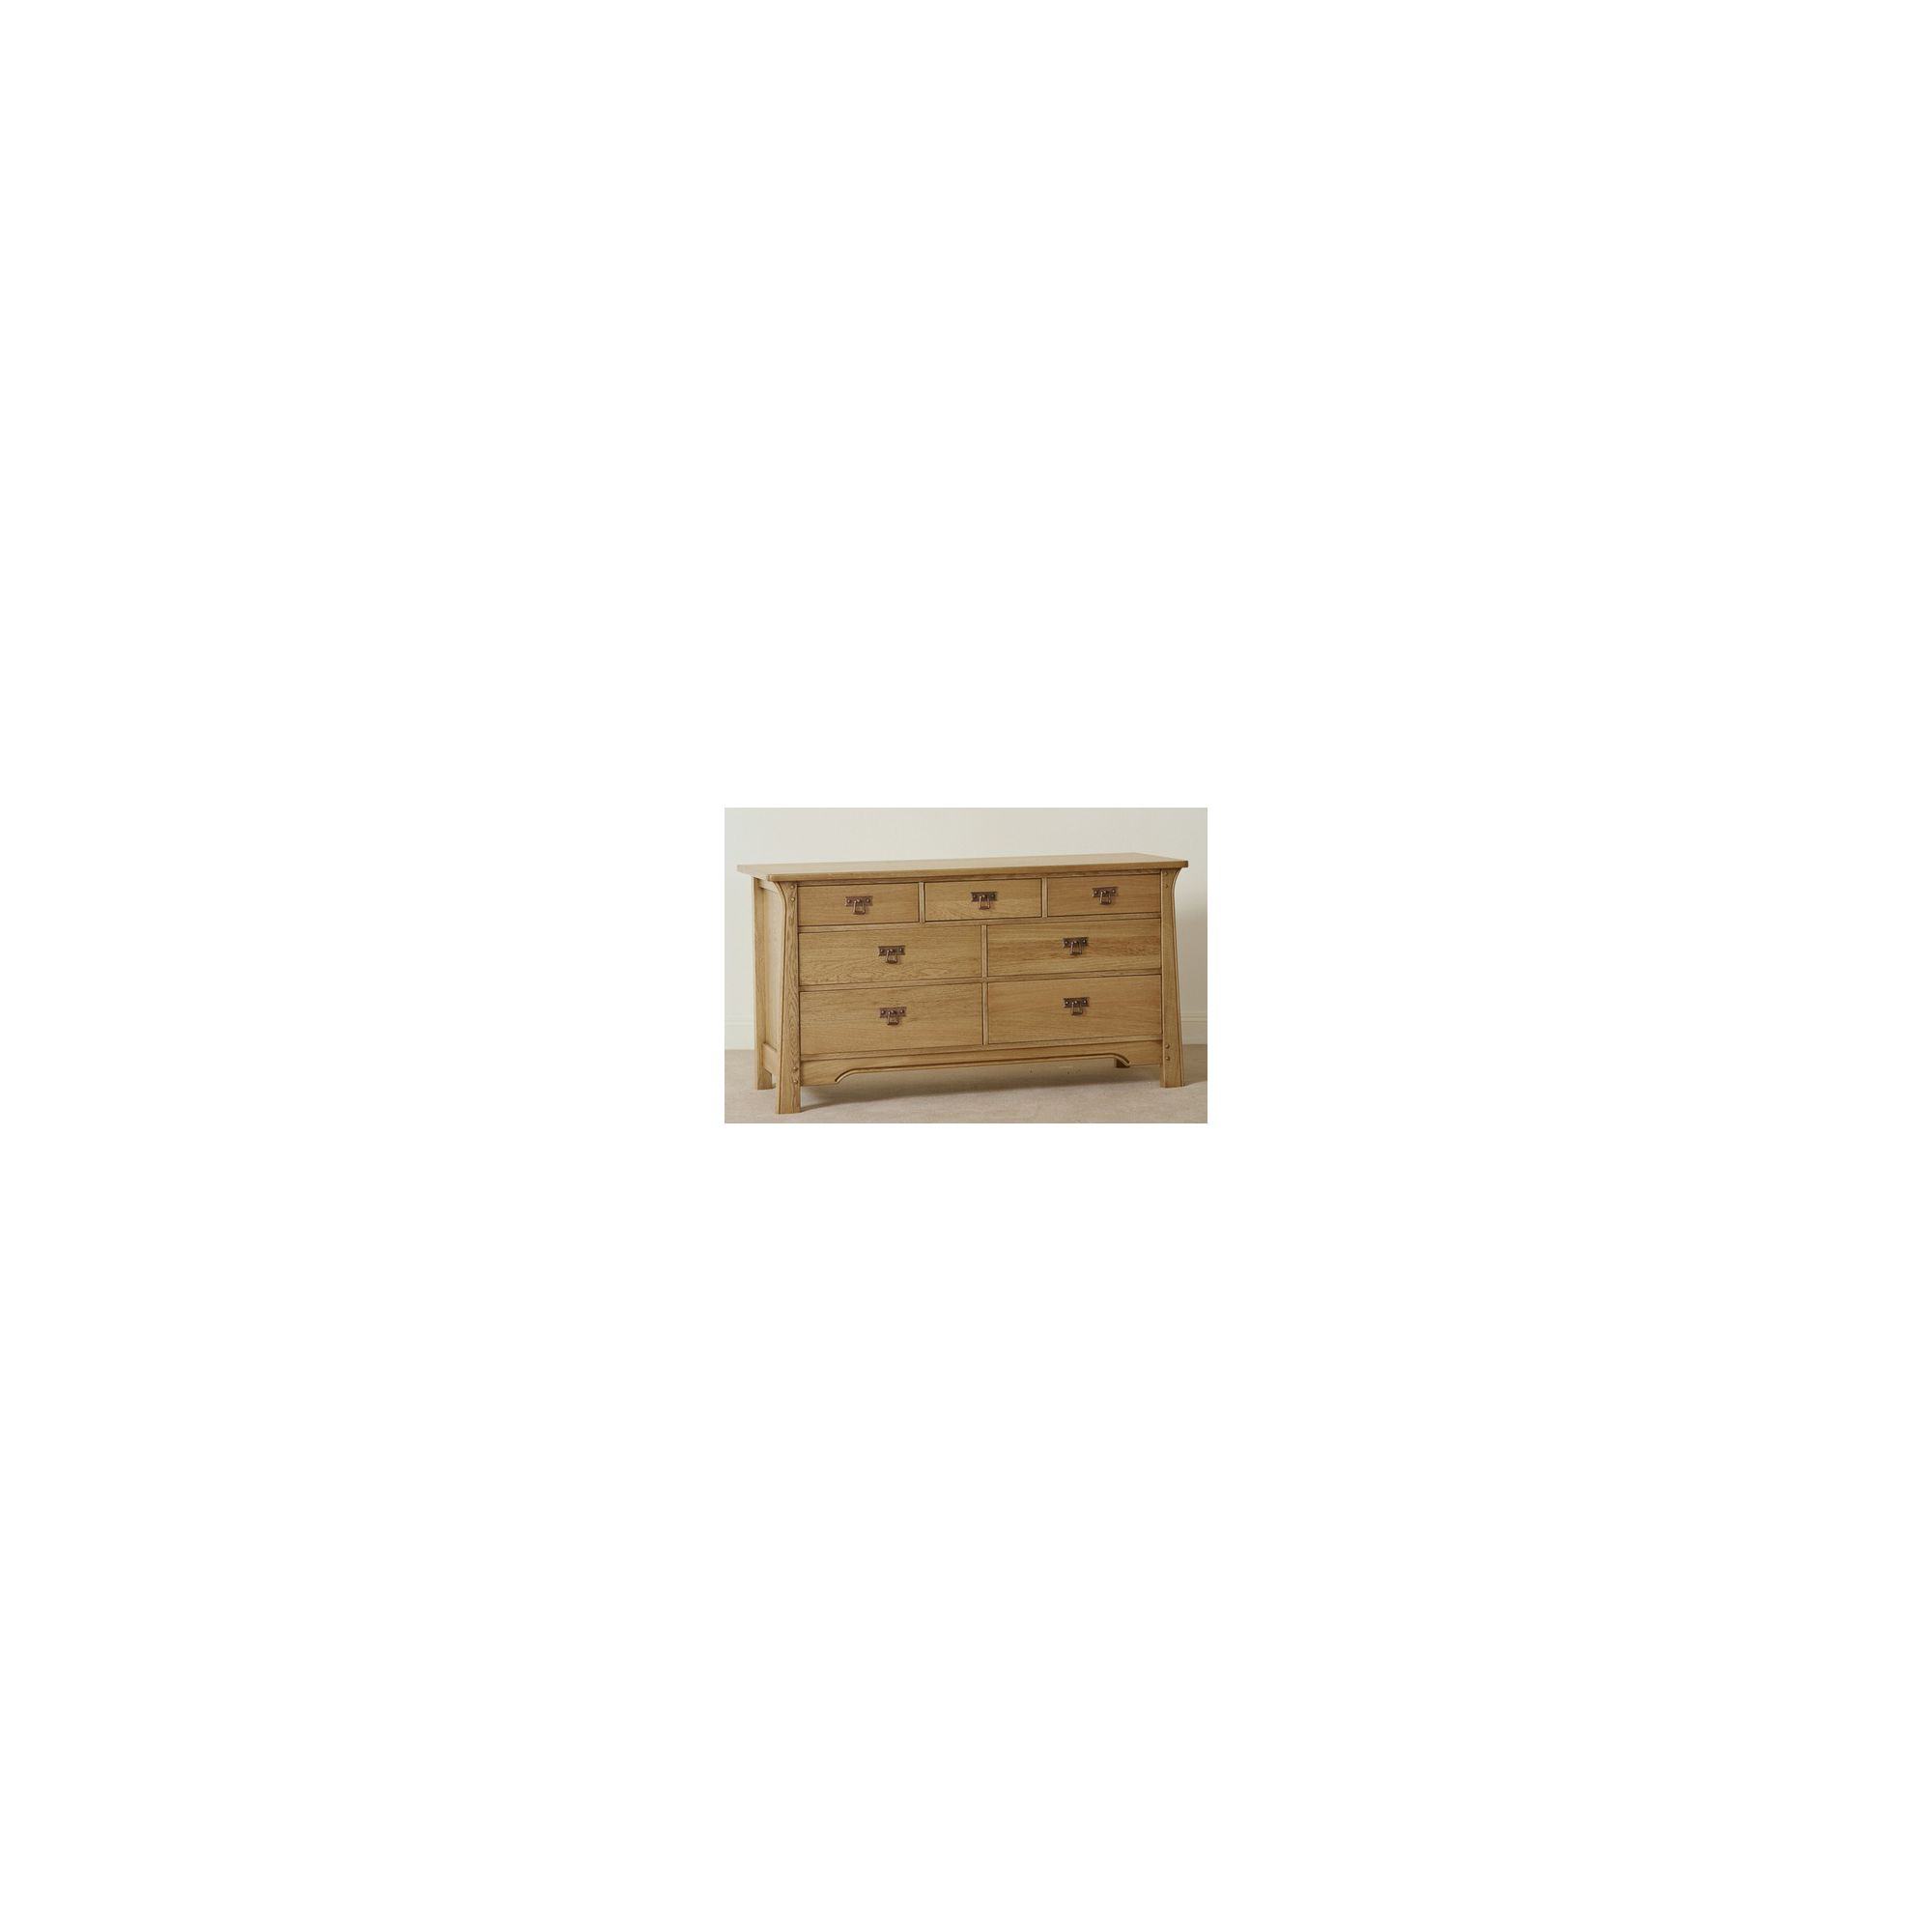 Sherry Designs Legacy Bedroom Low 7 Drawer Linen Chest - Antique Dark at Tesco Direct